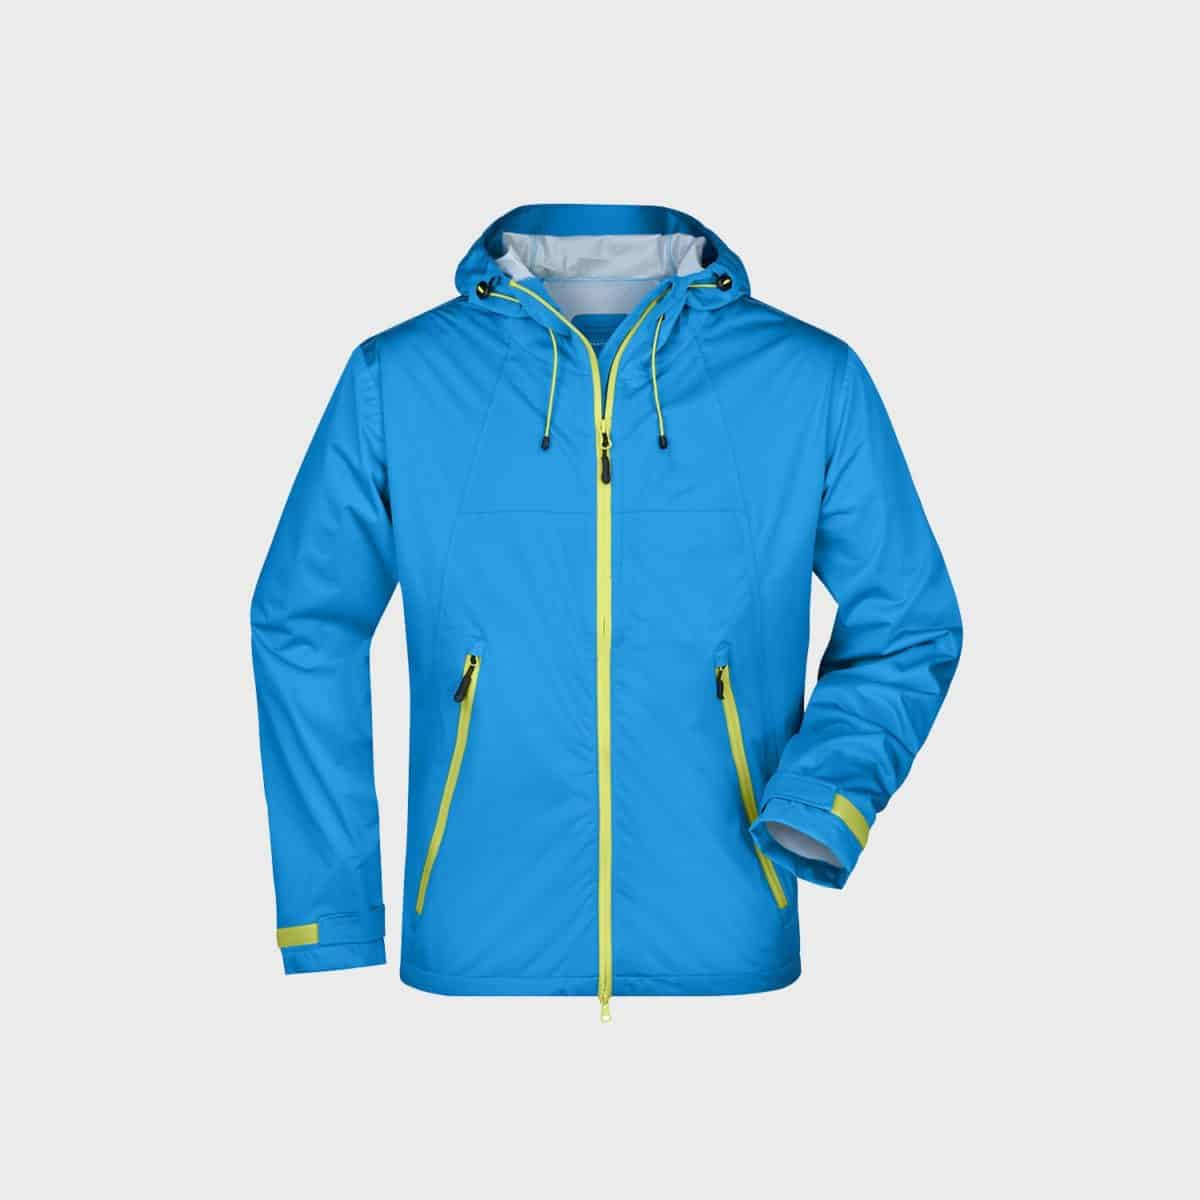 outdoor-jacket-herren-aqua-kaufen-besticken_stickmanufaktur